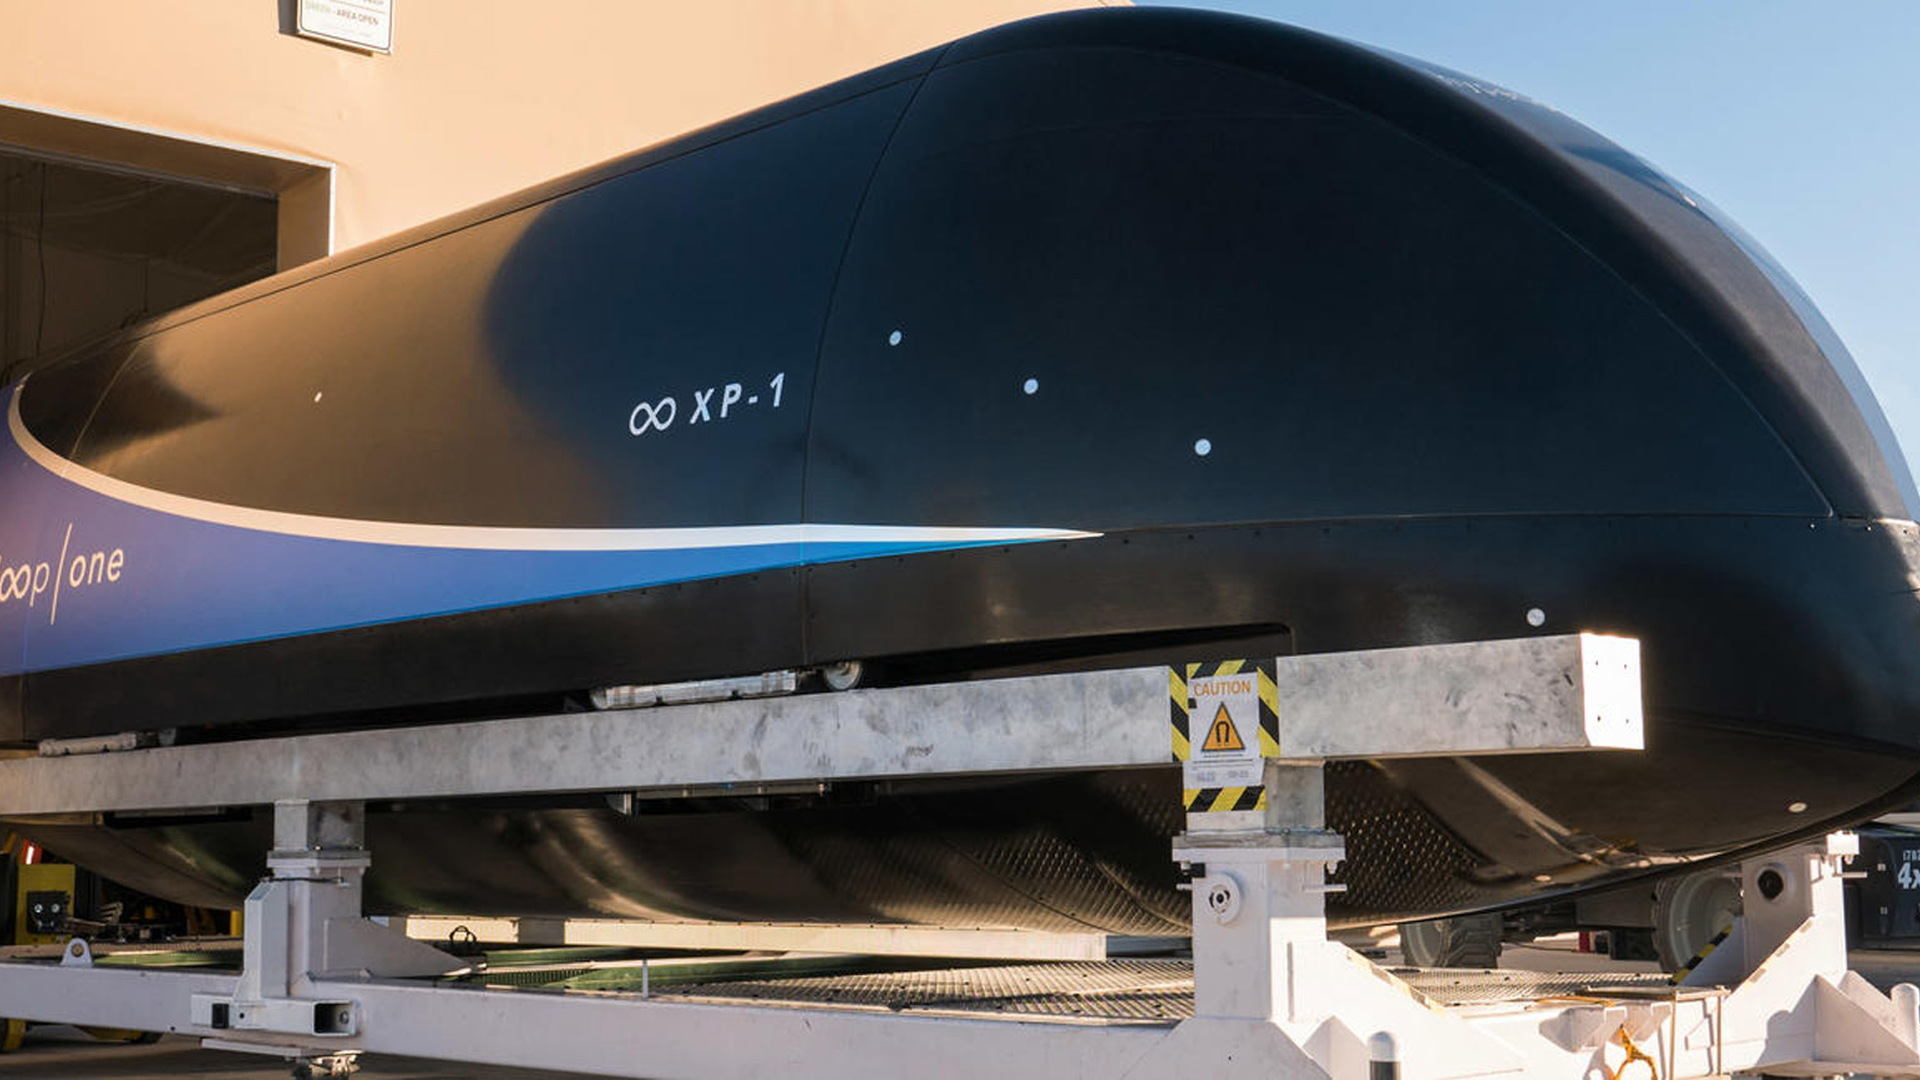 Virgin Hyperloop One test pod